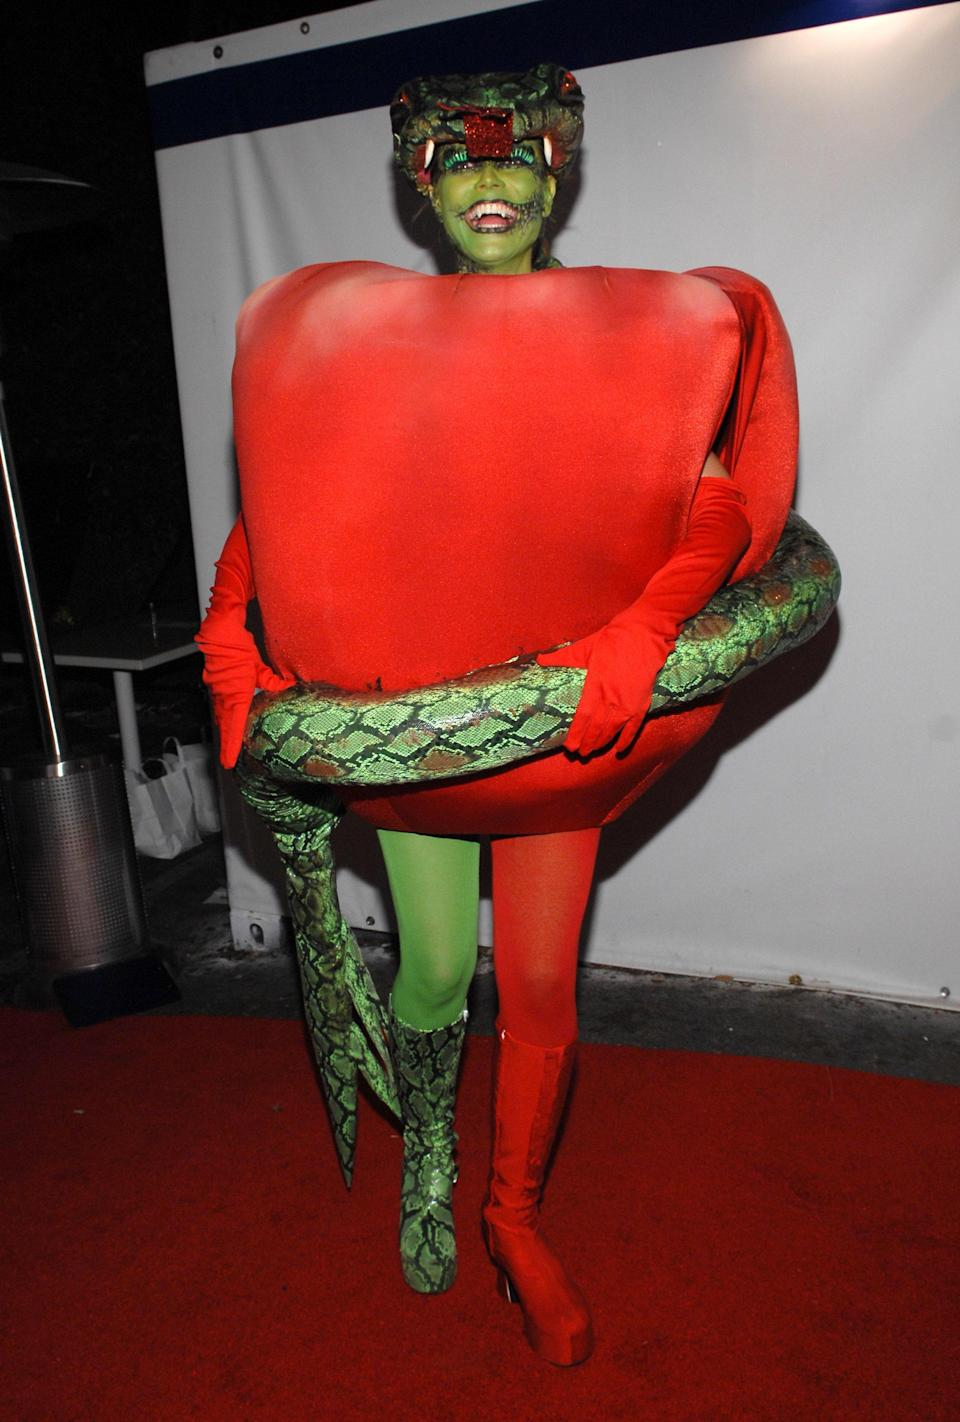 "<p>Klum came up with a way to incorporate her then eight-months-pregnant bump: Dress up as a red Delicious apple. But this isn't just any old apple; this is the Garden of Eden's forbidden fruit, thanks to the serpent addition. (Not pictured: then husband Seal as Eve.)</p> <p><strong>Get the look:</strong> <a href=""https://amzn.to/2DzzLxj"" rel=""nofollow noopener"" target=""_blank"" data-ylk=""slk:Women's Green Tights, Amazon ($12.90)"" class=""link rapid-noclick-resp"">Women's Green Tights, Amazon ($12.90)</a>, <a href=""https://www.urbanoutfitters.com/shop/urban-renewal-remnants-linen-tie-shoulder-mini-dress?category=SEARCHRESULTS&color=060"" rel=""nofollow noopener"" target=""_blank"" data-ylk=""slk:Urban Renewal Linen Tie-Shoulder Mini Dress ($49)"" class=""link rapid-noclick-resp"">Urban Renewal Linen Tie-Shoulder Mini Dress ($49)</a>, <a href=""https://amzn.to/2NLovTu"" rel=""nofollow noopener"" target=""_blank"" data-ylk=""slk:Mehron Makeup Paradise Makeup in Green, Amazon ($15.99)"" class=""link rapid-noclick-resp"">Mehron Makeup Paradise Makeup in Green, Amazon ($15.99)</a></p>"